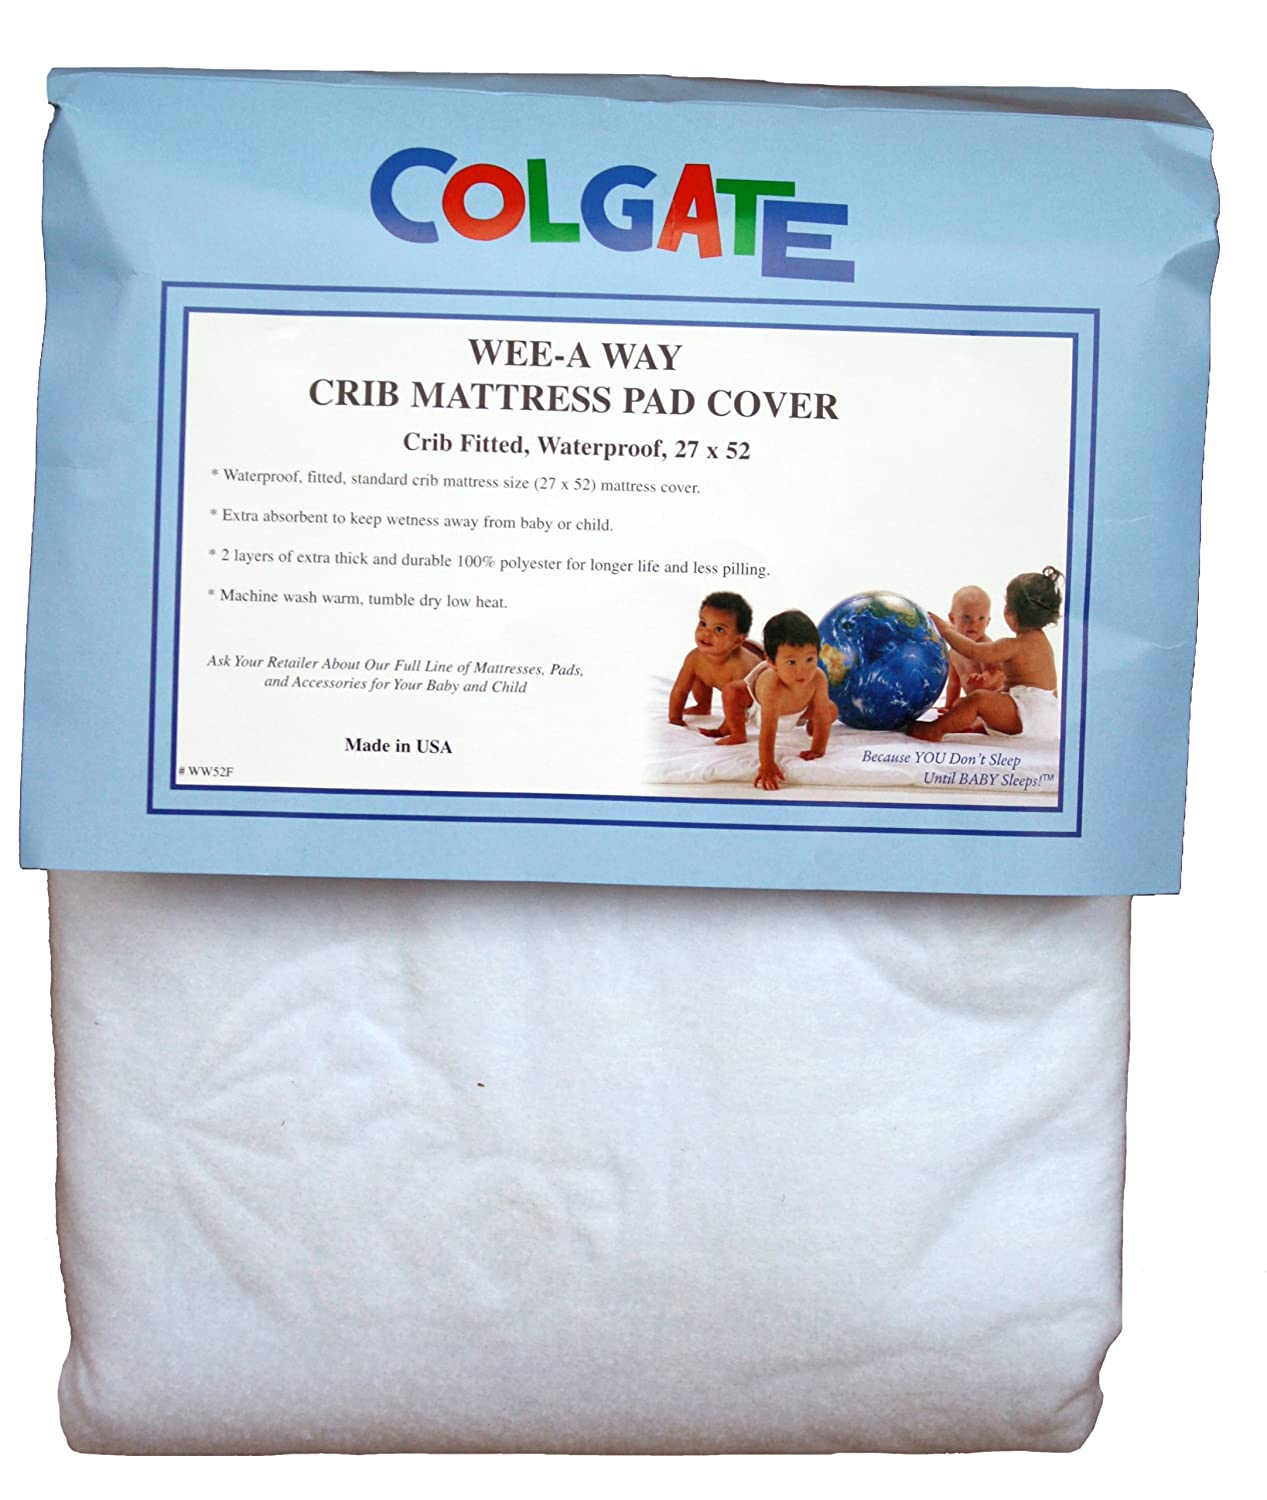 Amazon.com : Colgate Wee-A-Way - Waterproof Crib Mattress Pad Cover, Extra  Soft & Absorbant, Machine-Washable, Fitted with Elastic, White : Crib  Mattress ...